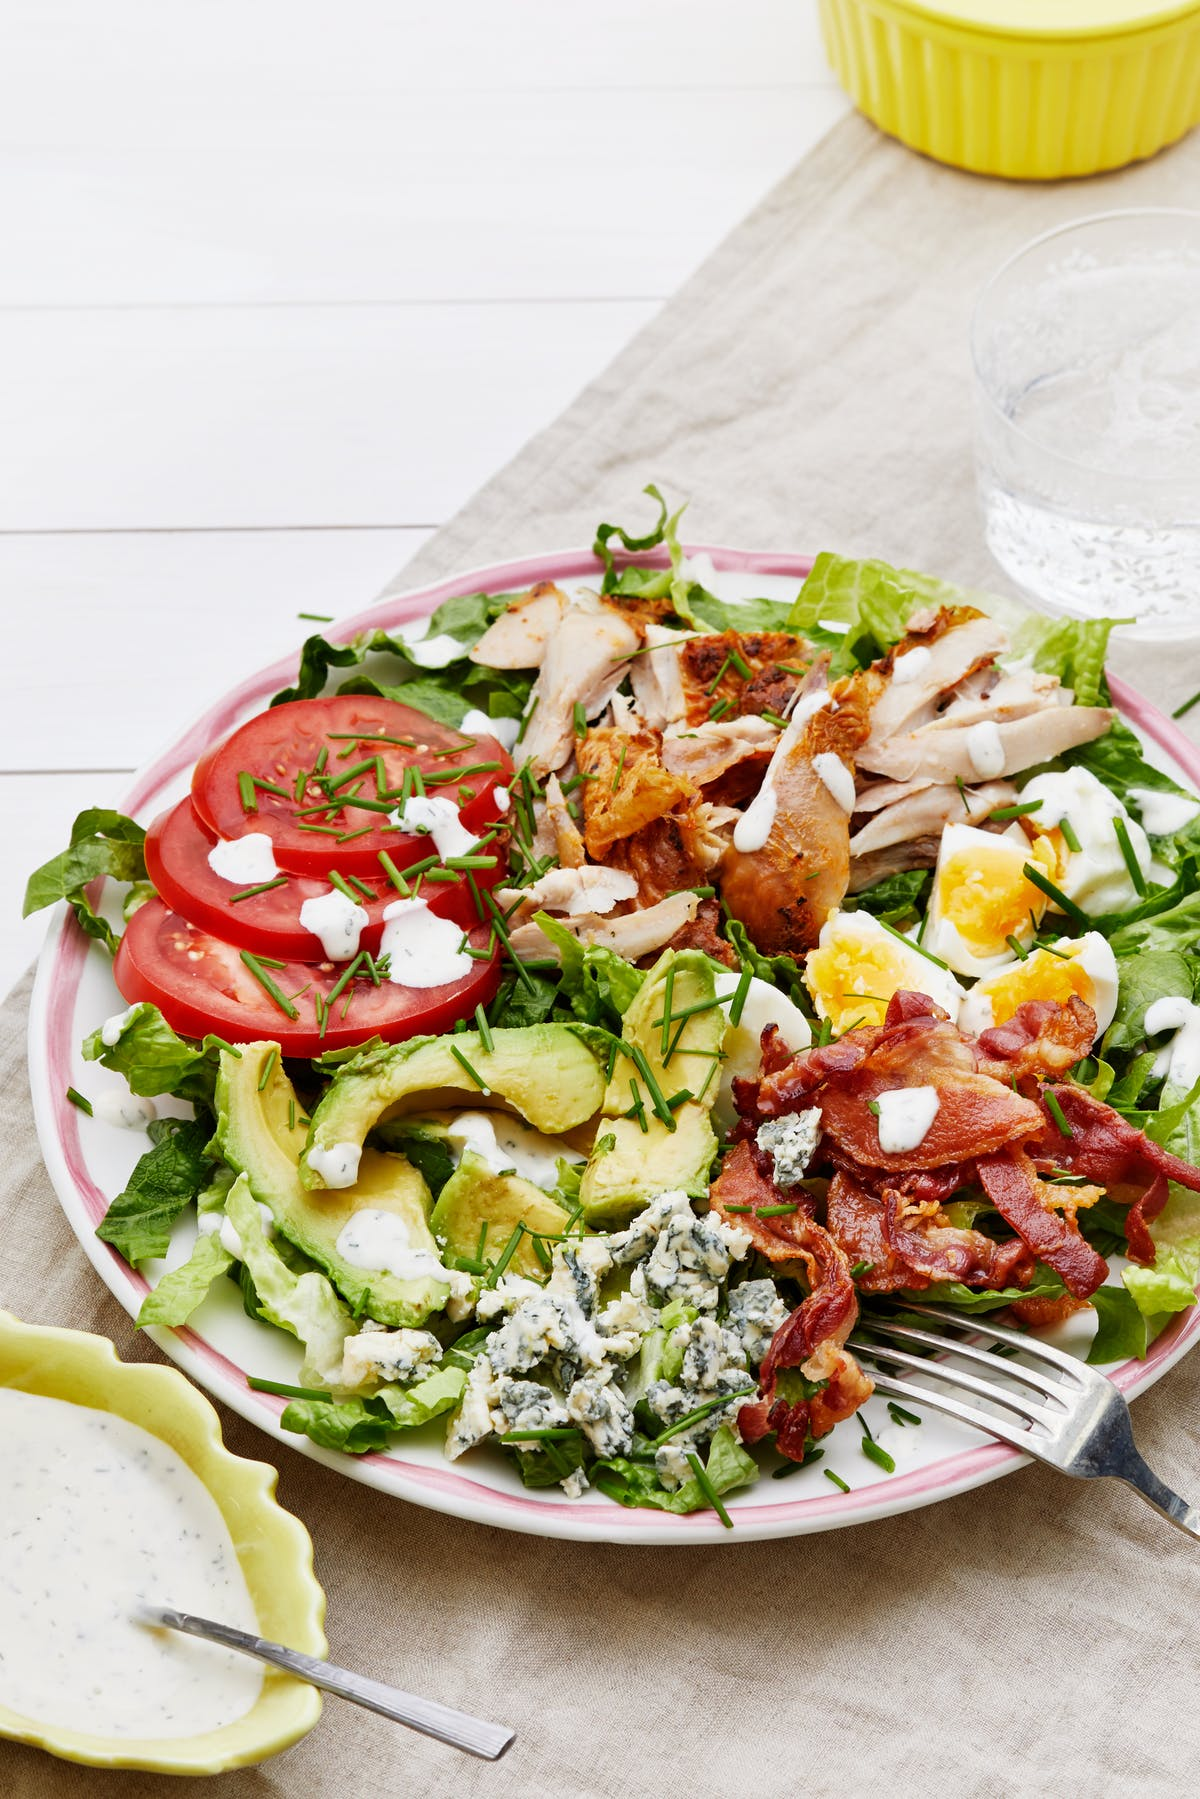 15 Mediterranean Diet Salad Recipes: Crunchy and Colorful!